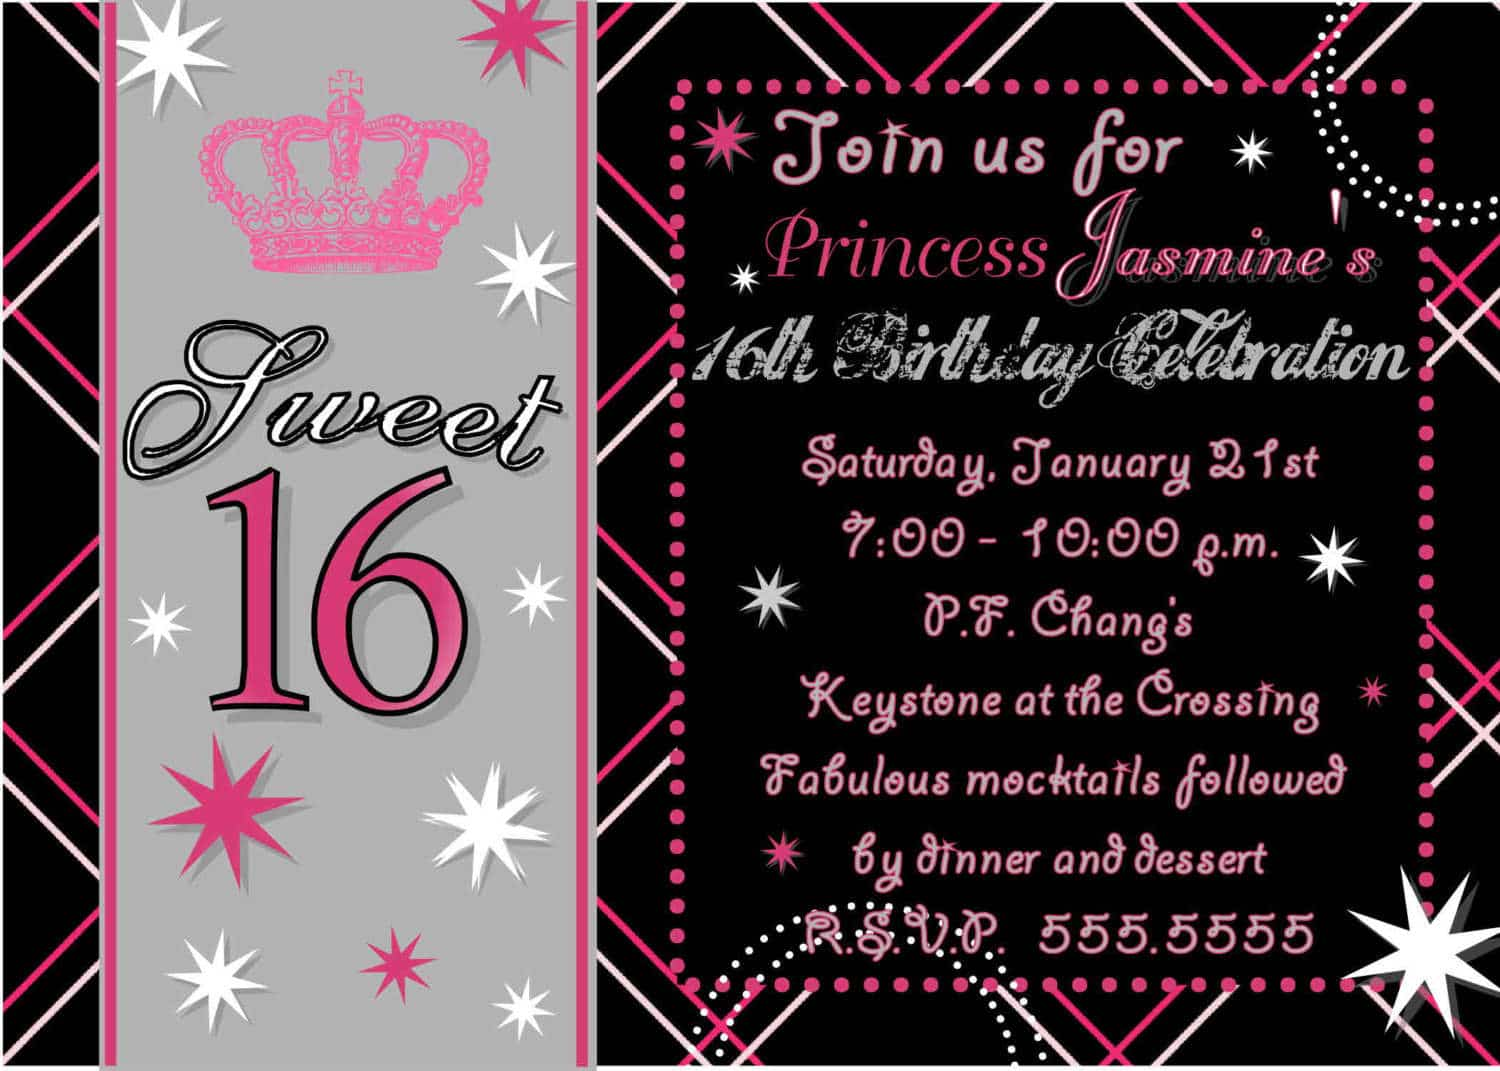 invitation ideas for 16th birthday party ; the-sweet-16-birthday-invitations-ideas-with-for-16th-birthday-invitations-sweet-16-birthday-party-invitations-egreeting-ecards-com